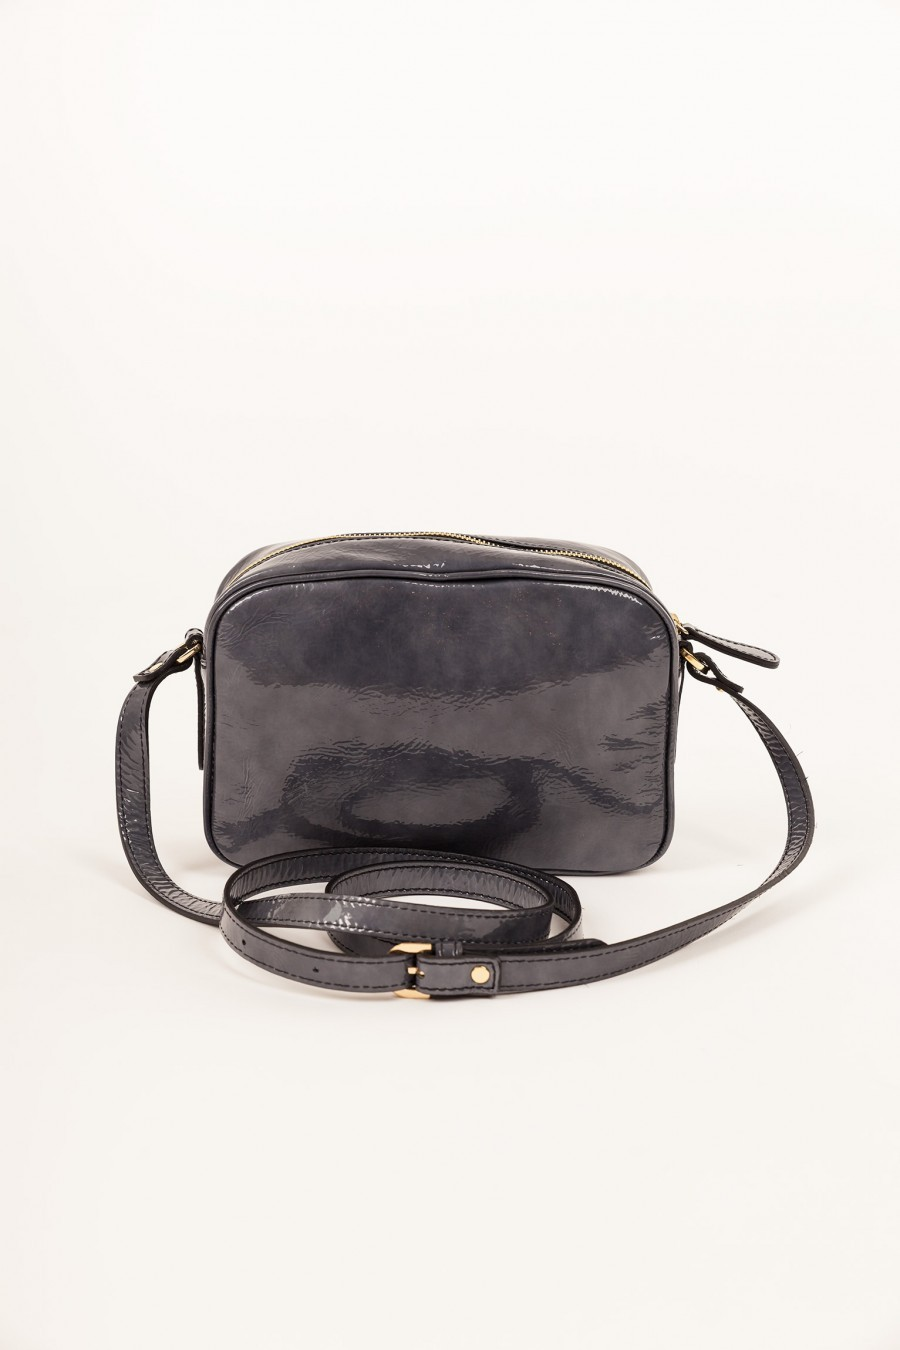 Lazzari bag patent leather rectangular